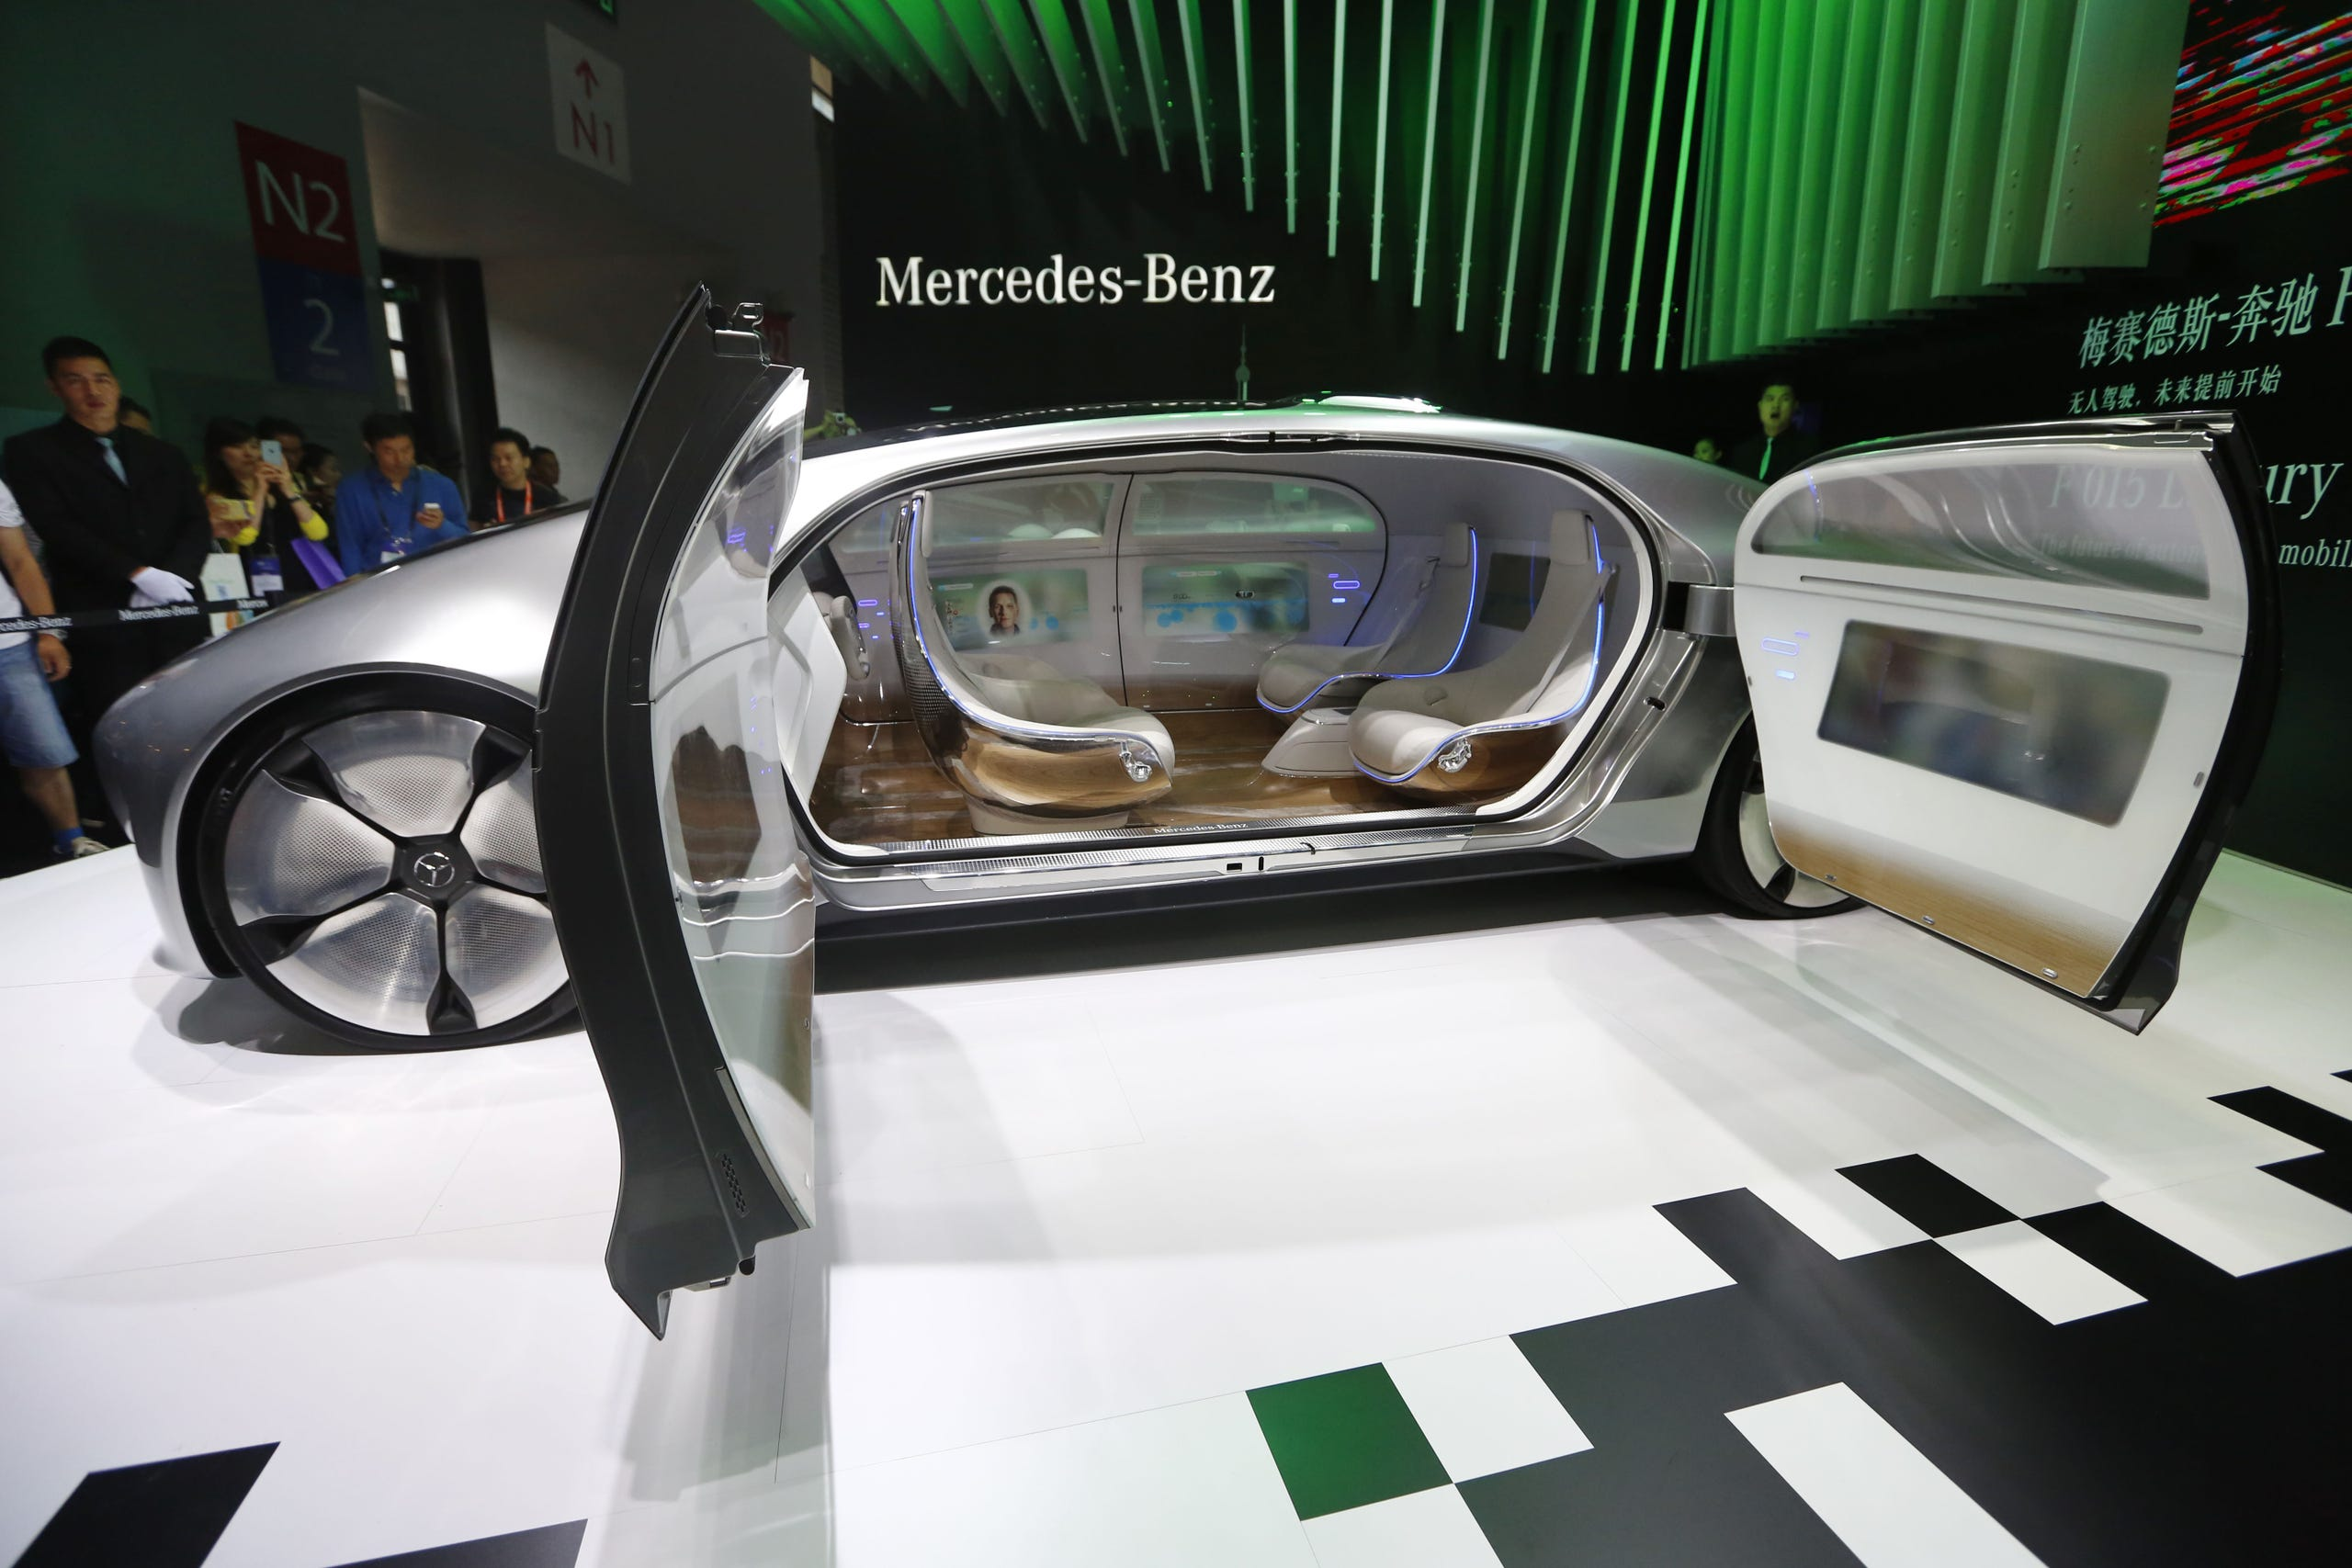 Mercedes-Benz F 015 Luxury in Motion concept car